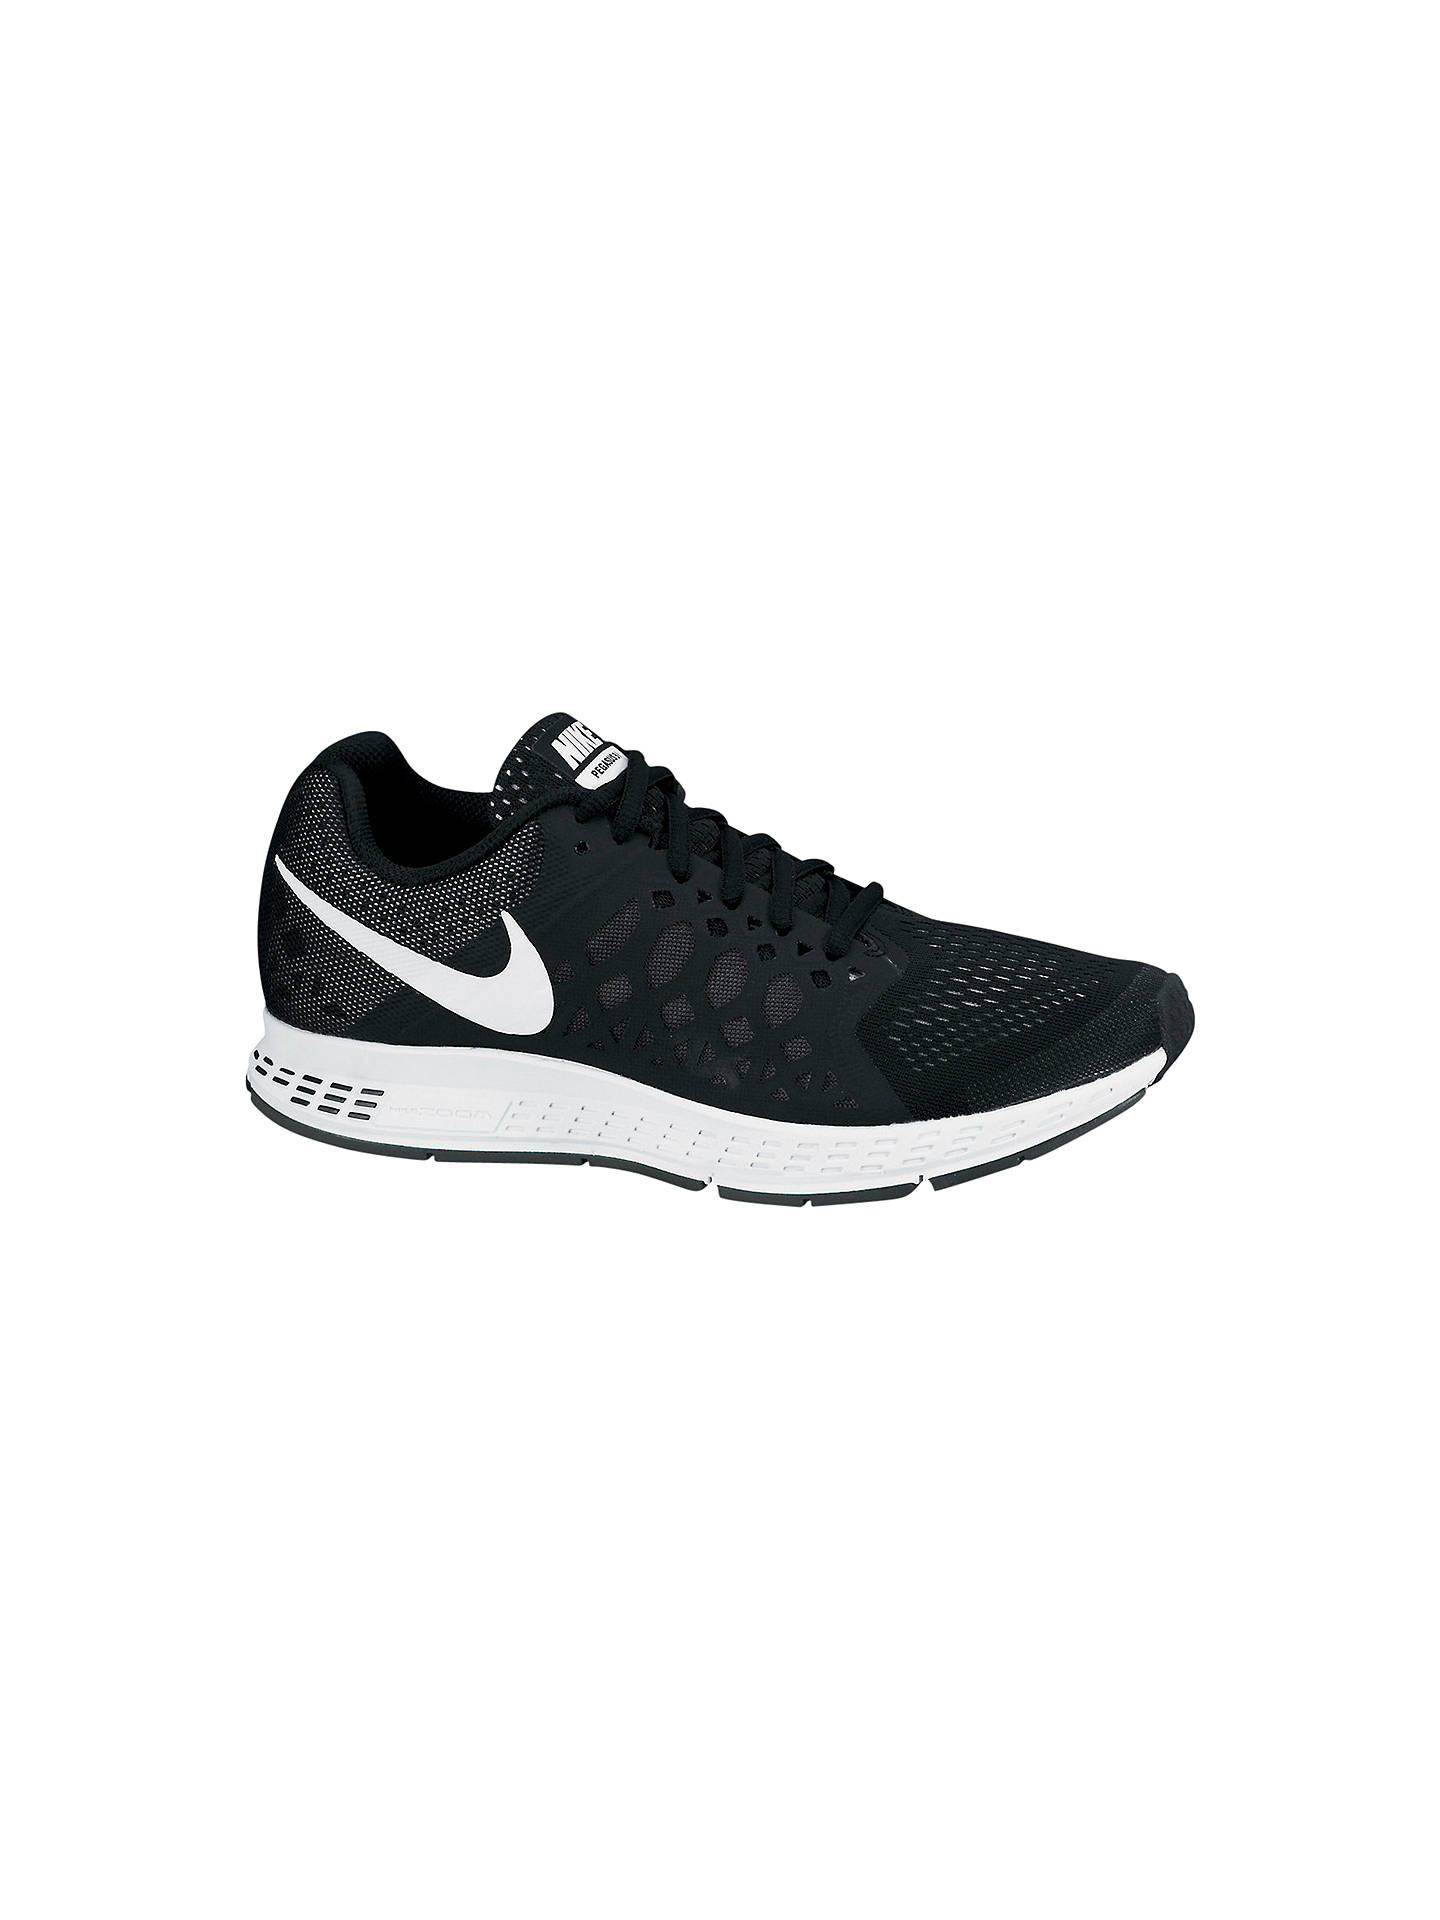 959cc8b9760c Buy Nike Air Zoom Pegasus 31 Women s Running Shoes